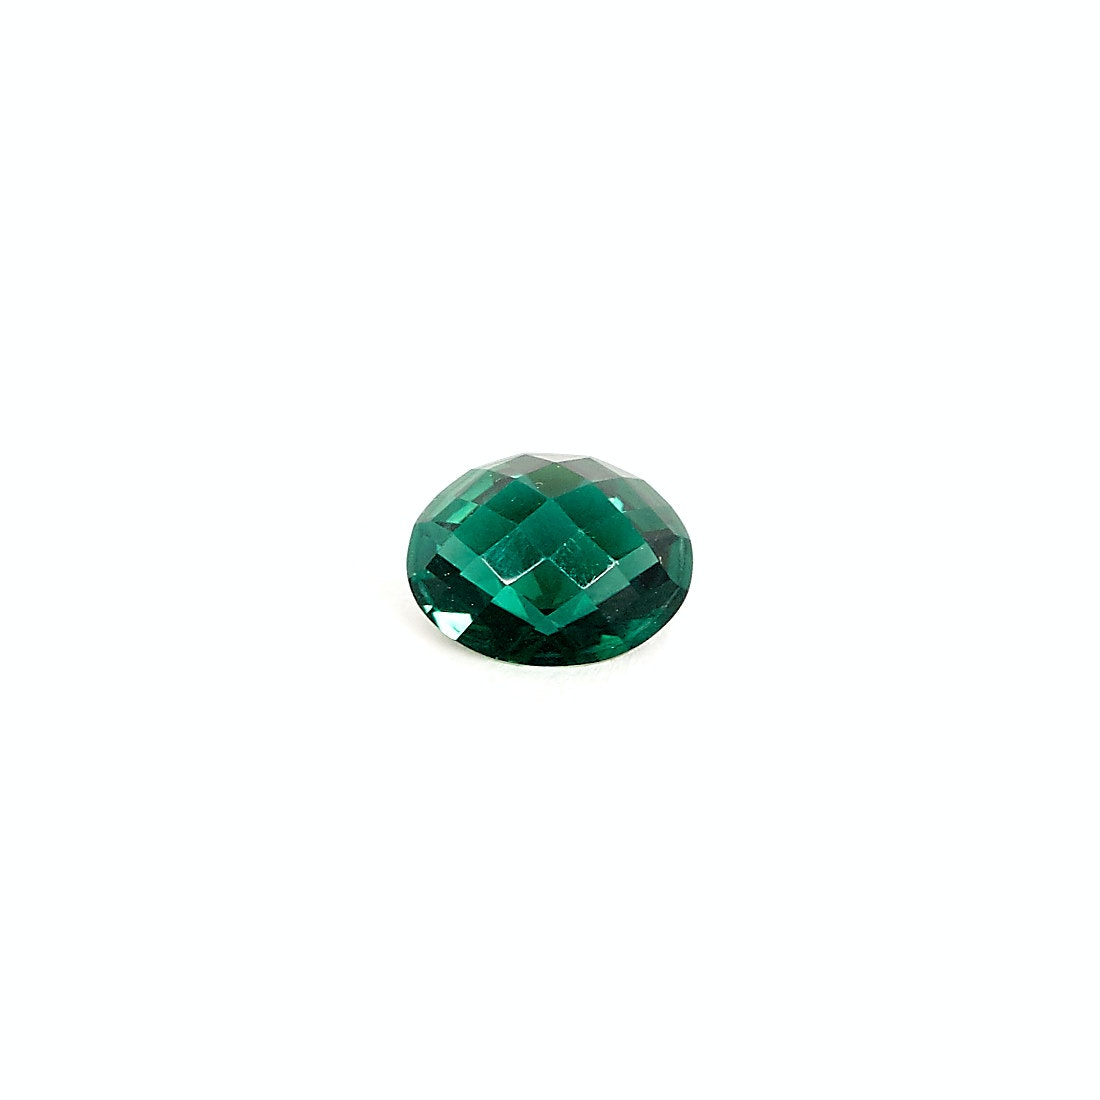 Checkerboard Cut Green Synthetic Quartz Gemstone